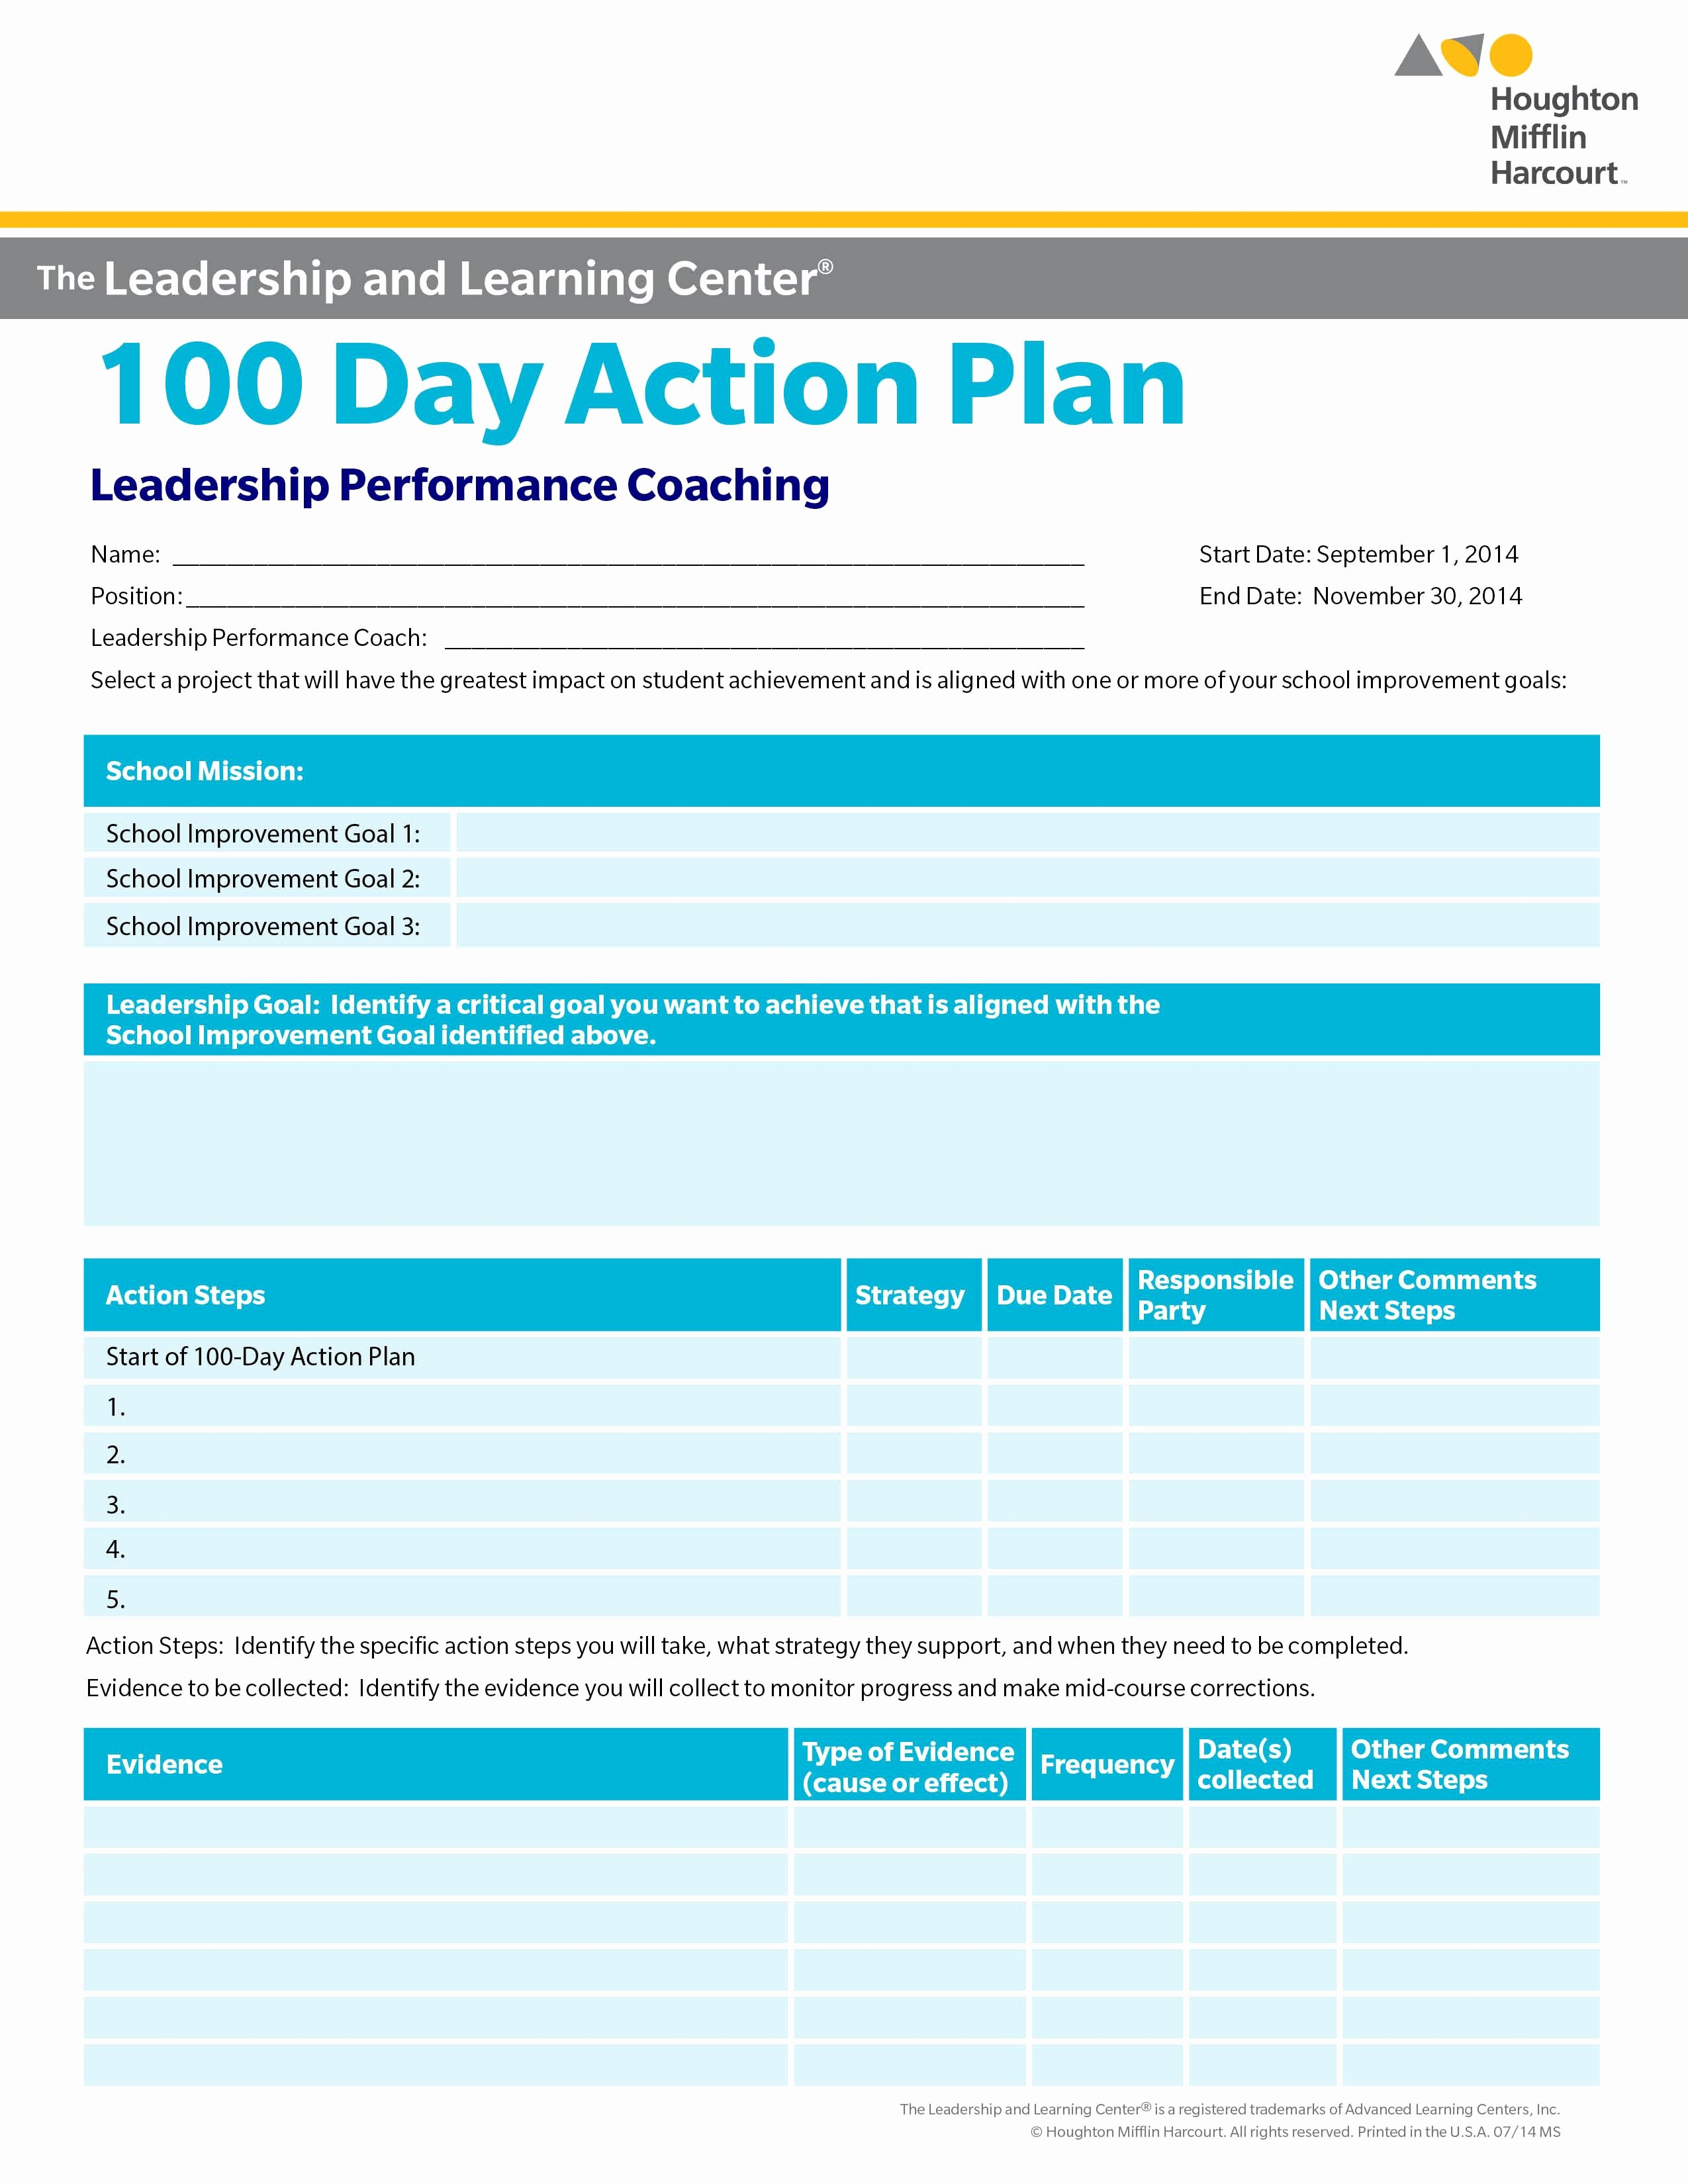 100 Day Plan Template Inspirational School Improvement 100 Day Action Plan Select A Goal for